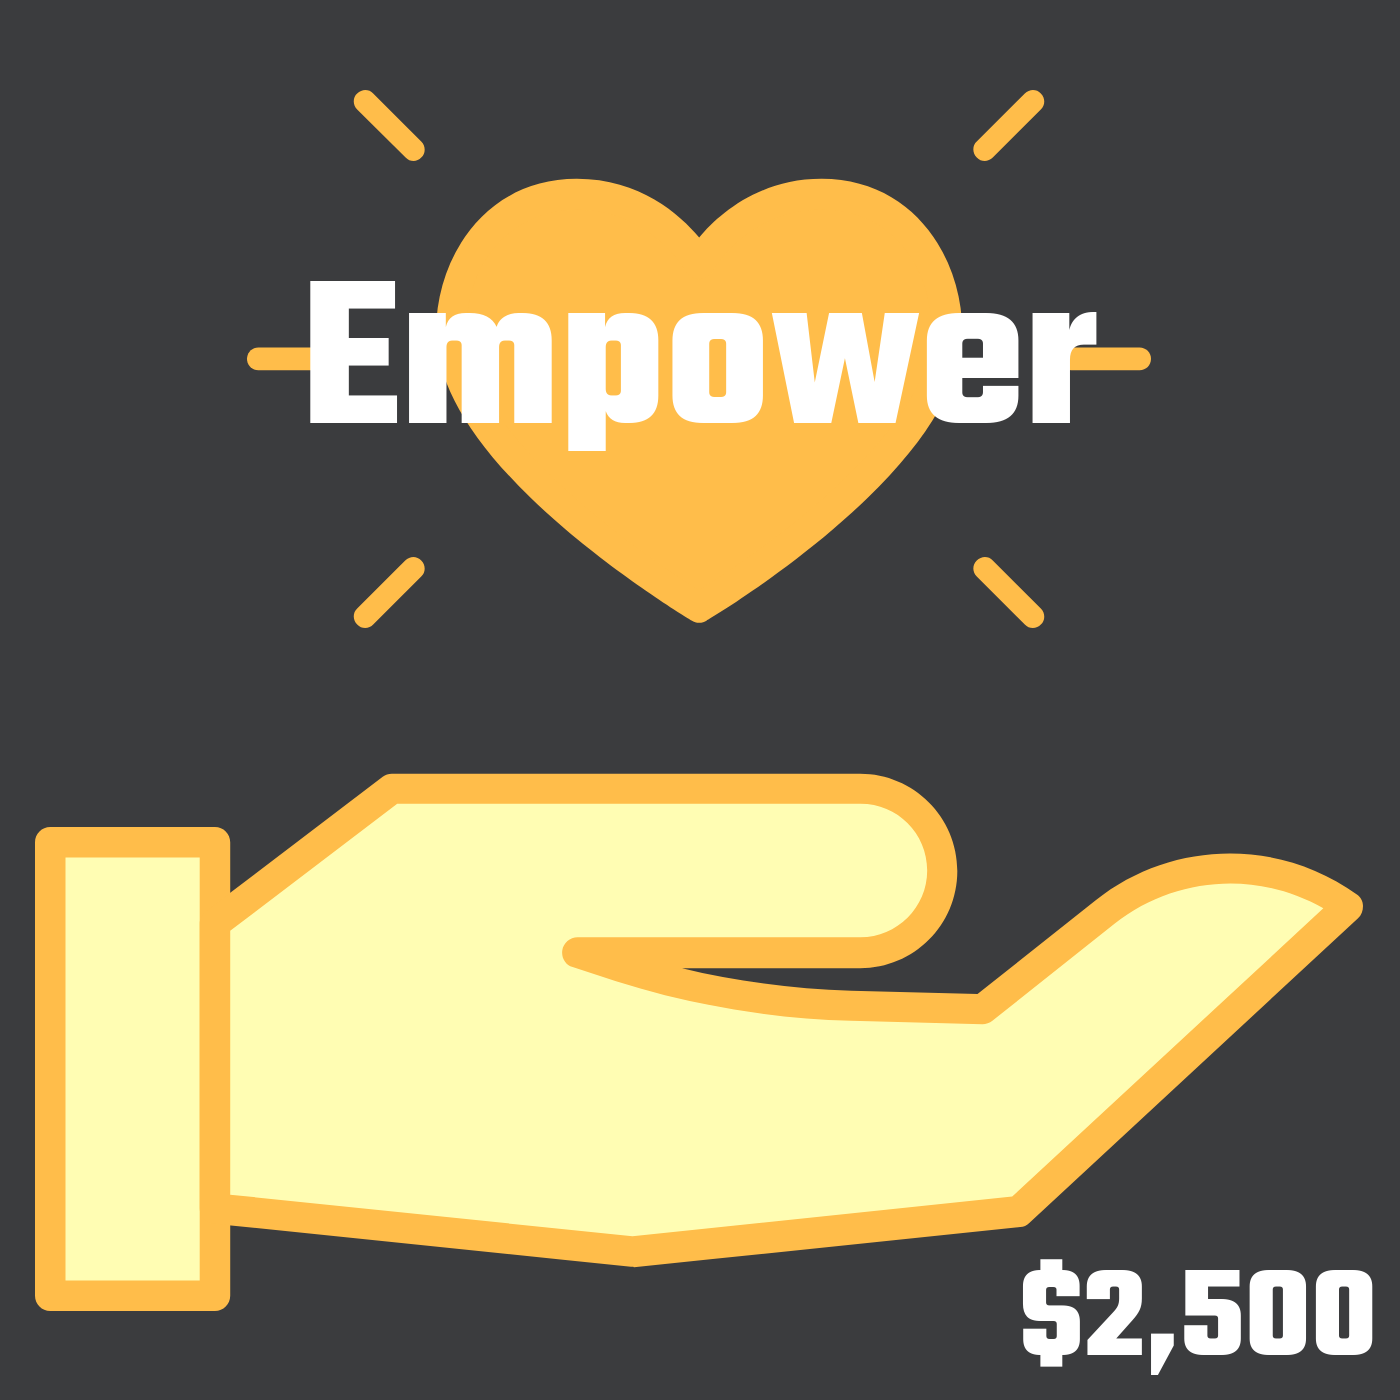 "Empower ($2,500+) - Wow! You are truly a champion of change; we see that and we want to help others see that too. You're changing the world by truly backing the stories we need to share more of. Benefits for Empower Patrons include everything from the previous packages and:- a produced Youtube video highlighting you and your organization- a 1 week social media takeover (rather than 1 day) including daily posts and engagement from us- top billing (""presented by…"" YOU!)- your name or organization's logo featured on the film episodes- opportunity to contribute a letter from you or your organization to the 20s and Change Digital Storybook, an online content compilation we share at the end of 20s and Change"